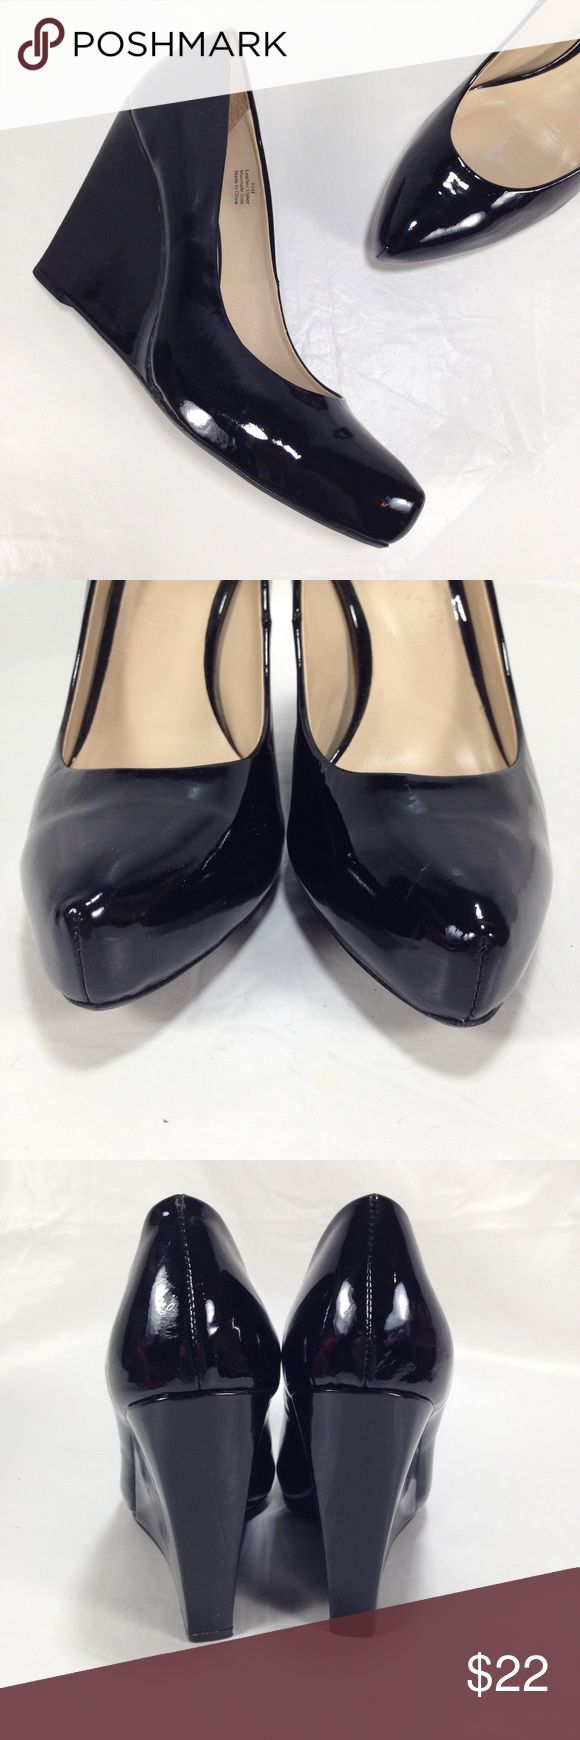 Halogen Patent Leather Wedes Black patent leather. Great condition! Halogen Shoes Wedges